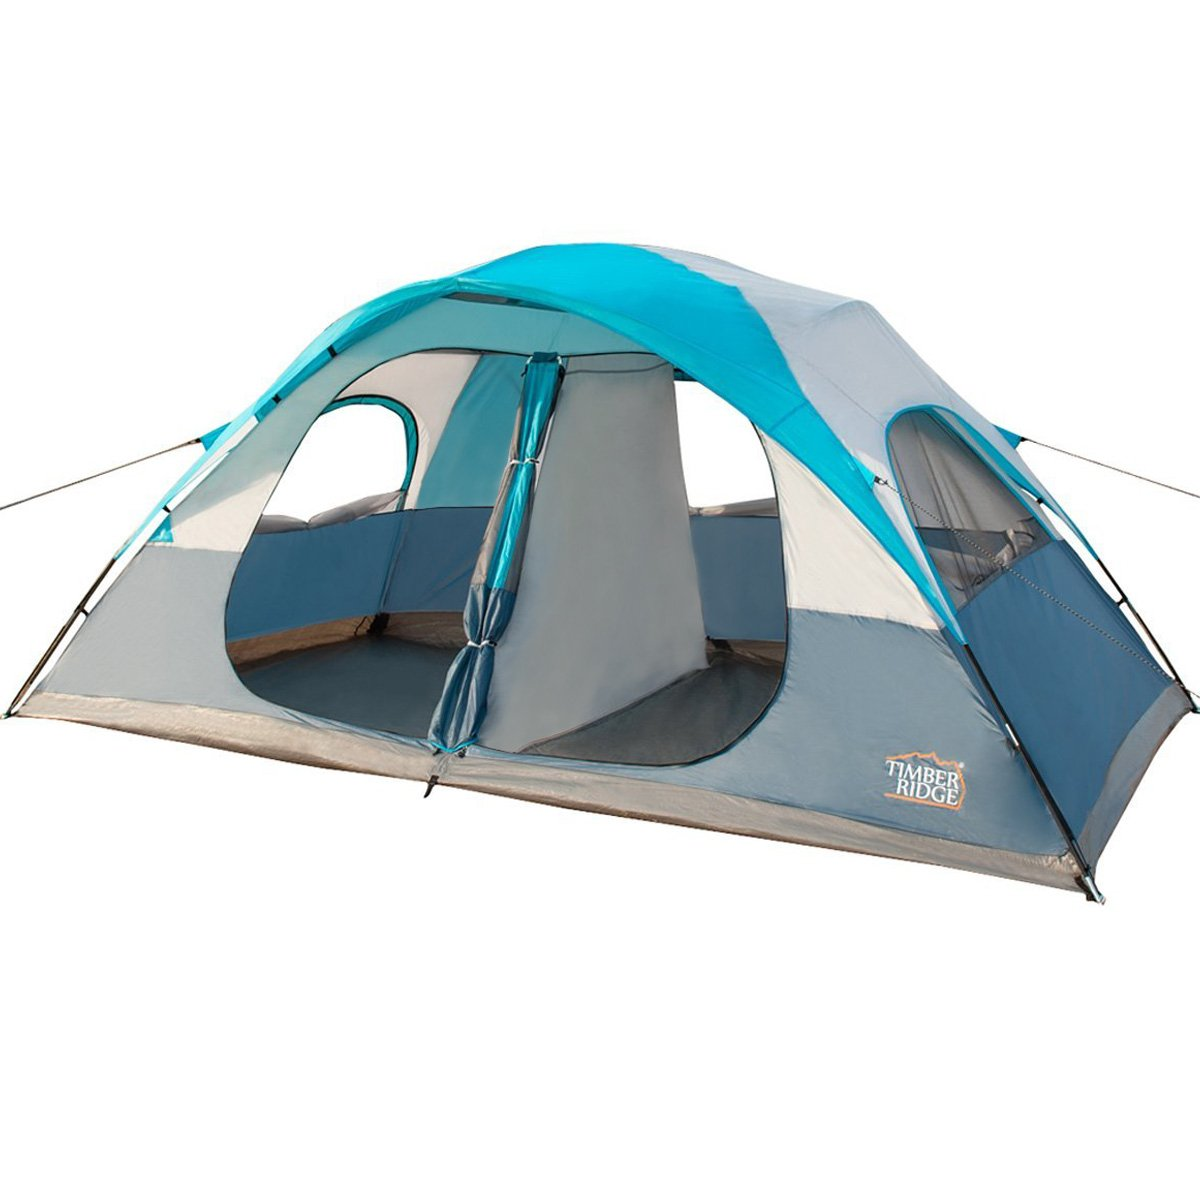 Timber Ridge WF140874TU 9x10x27-Inch 8-Person Tent with Carry Bag, 2 Doors and 2 Rooms, Turquoise